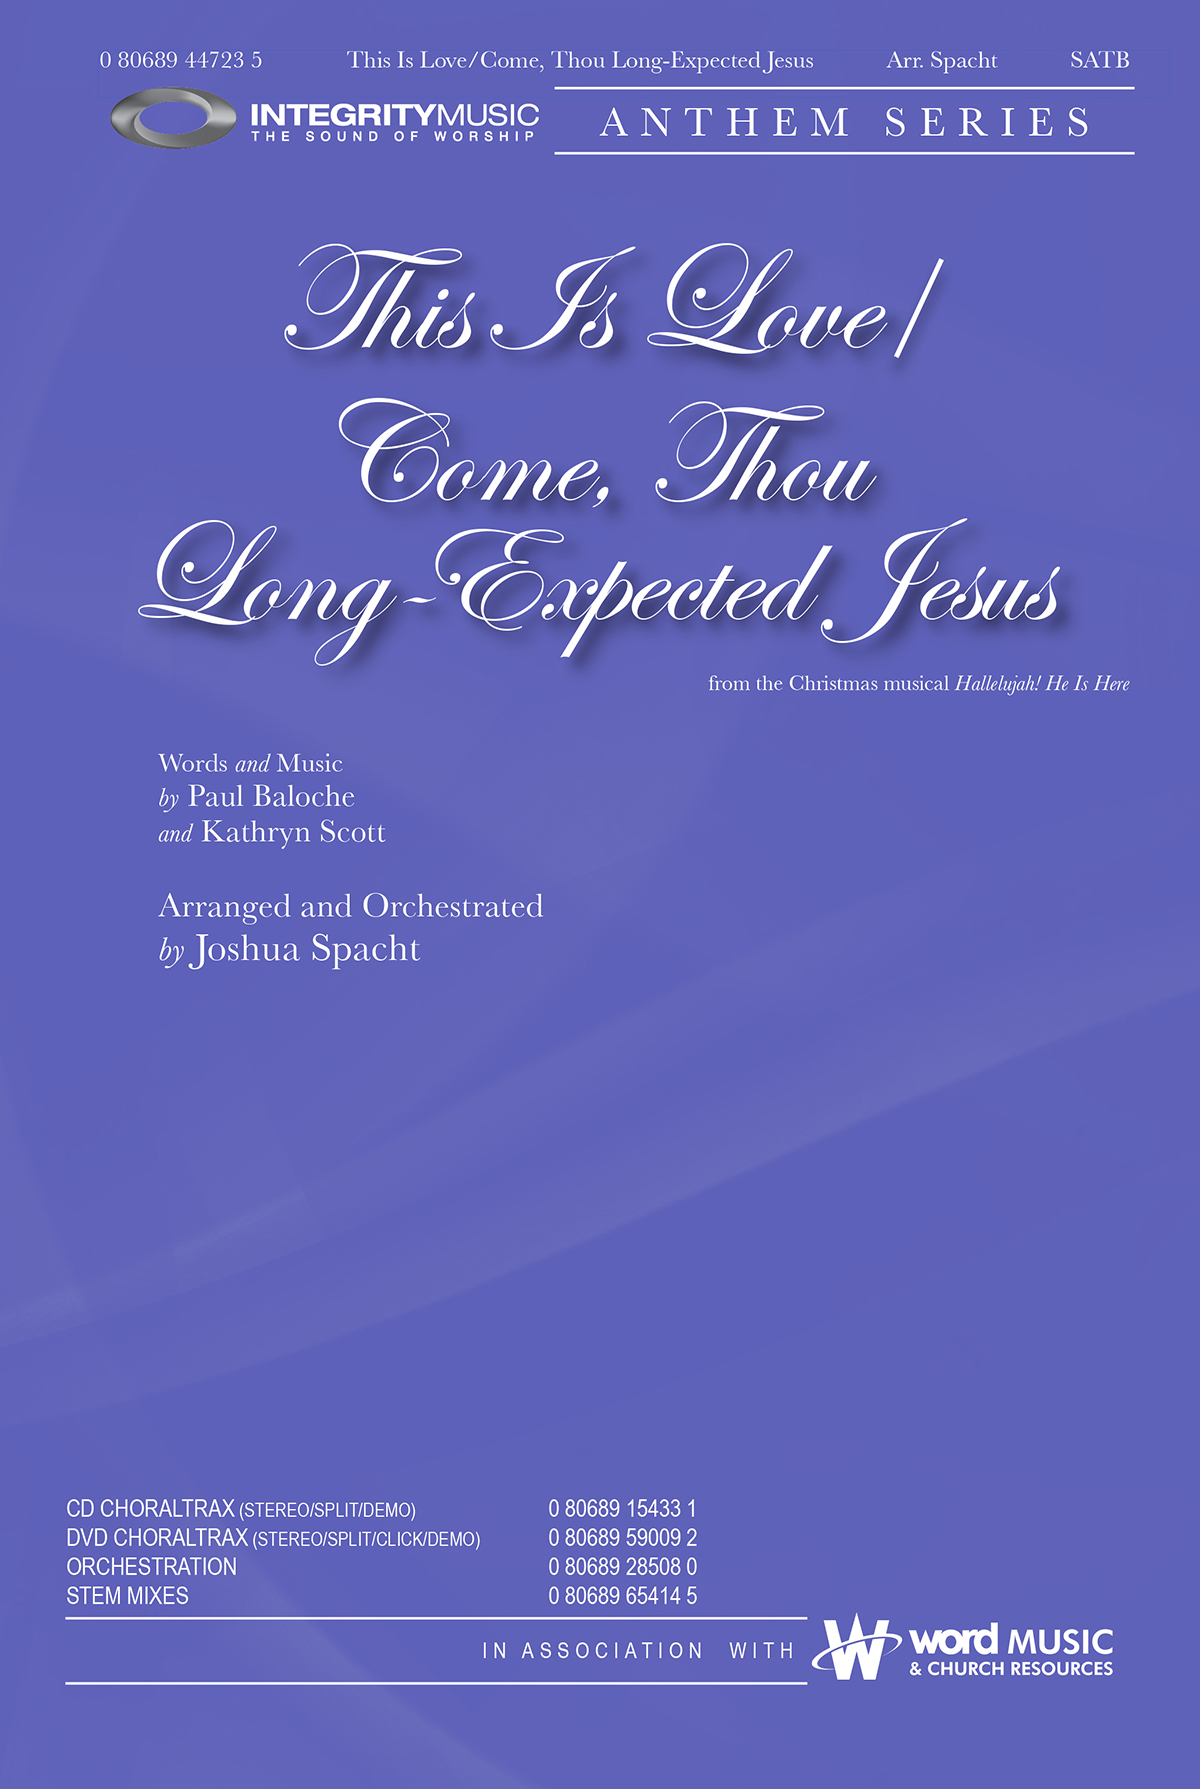 This Is Love/Come, Thou Long-Expected Jesus